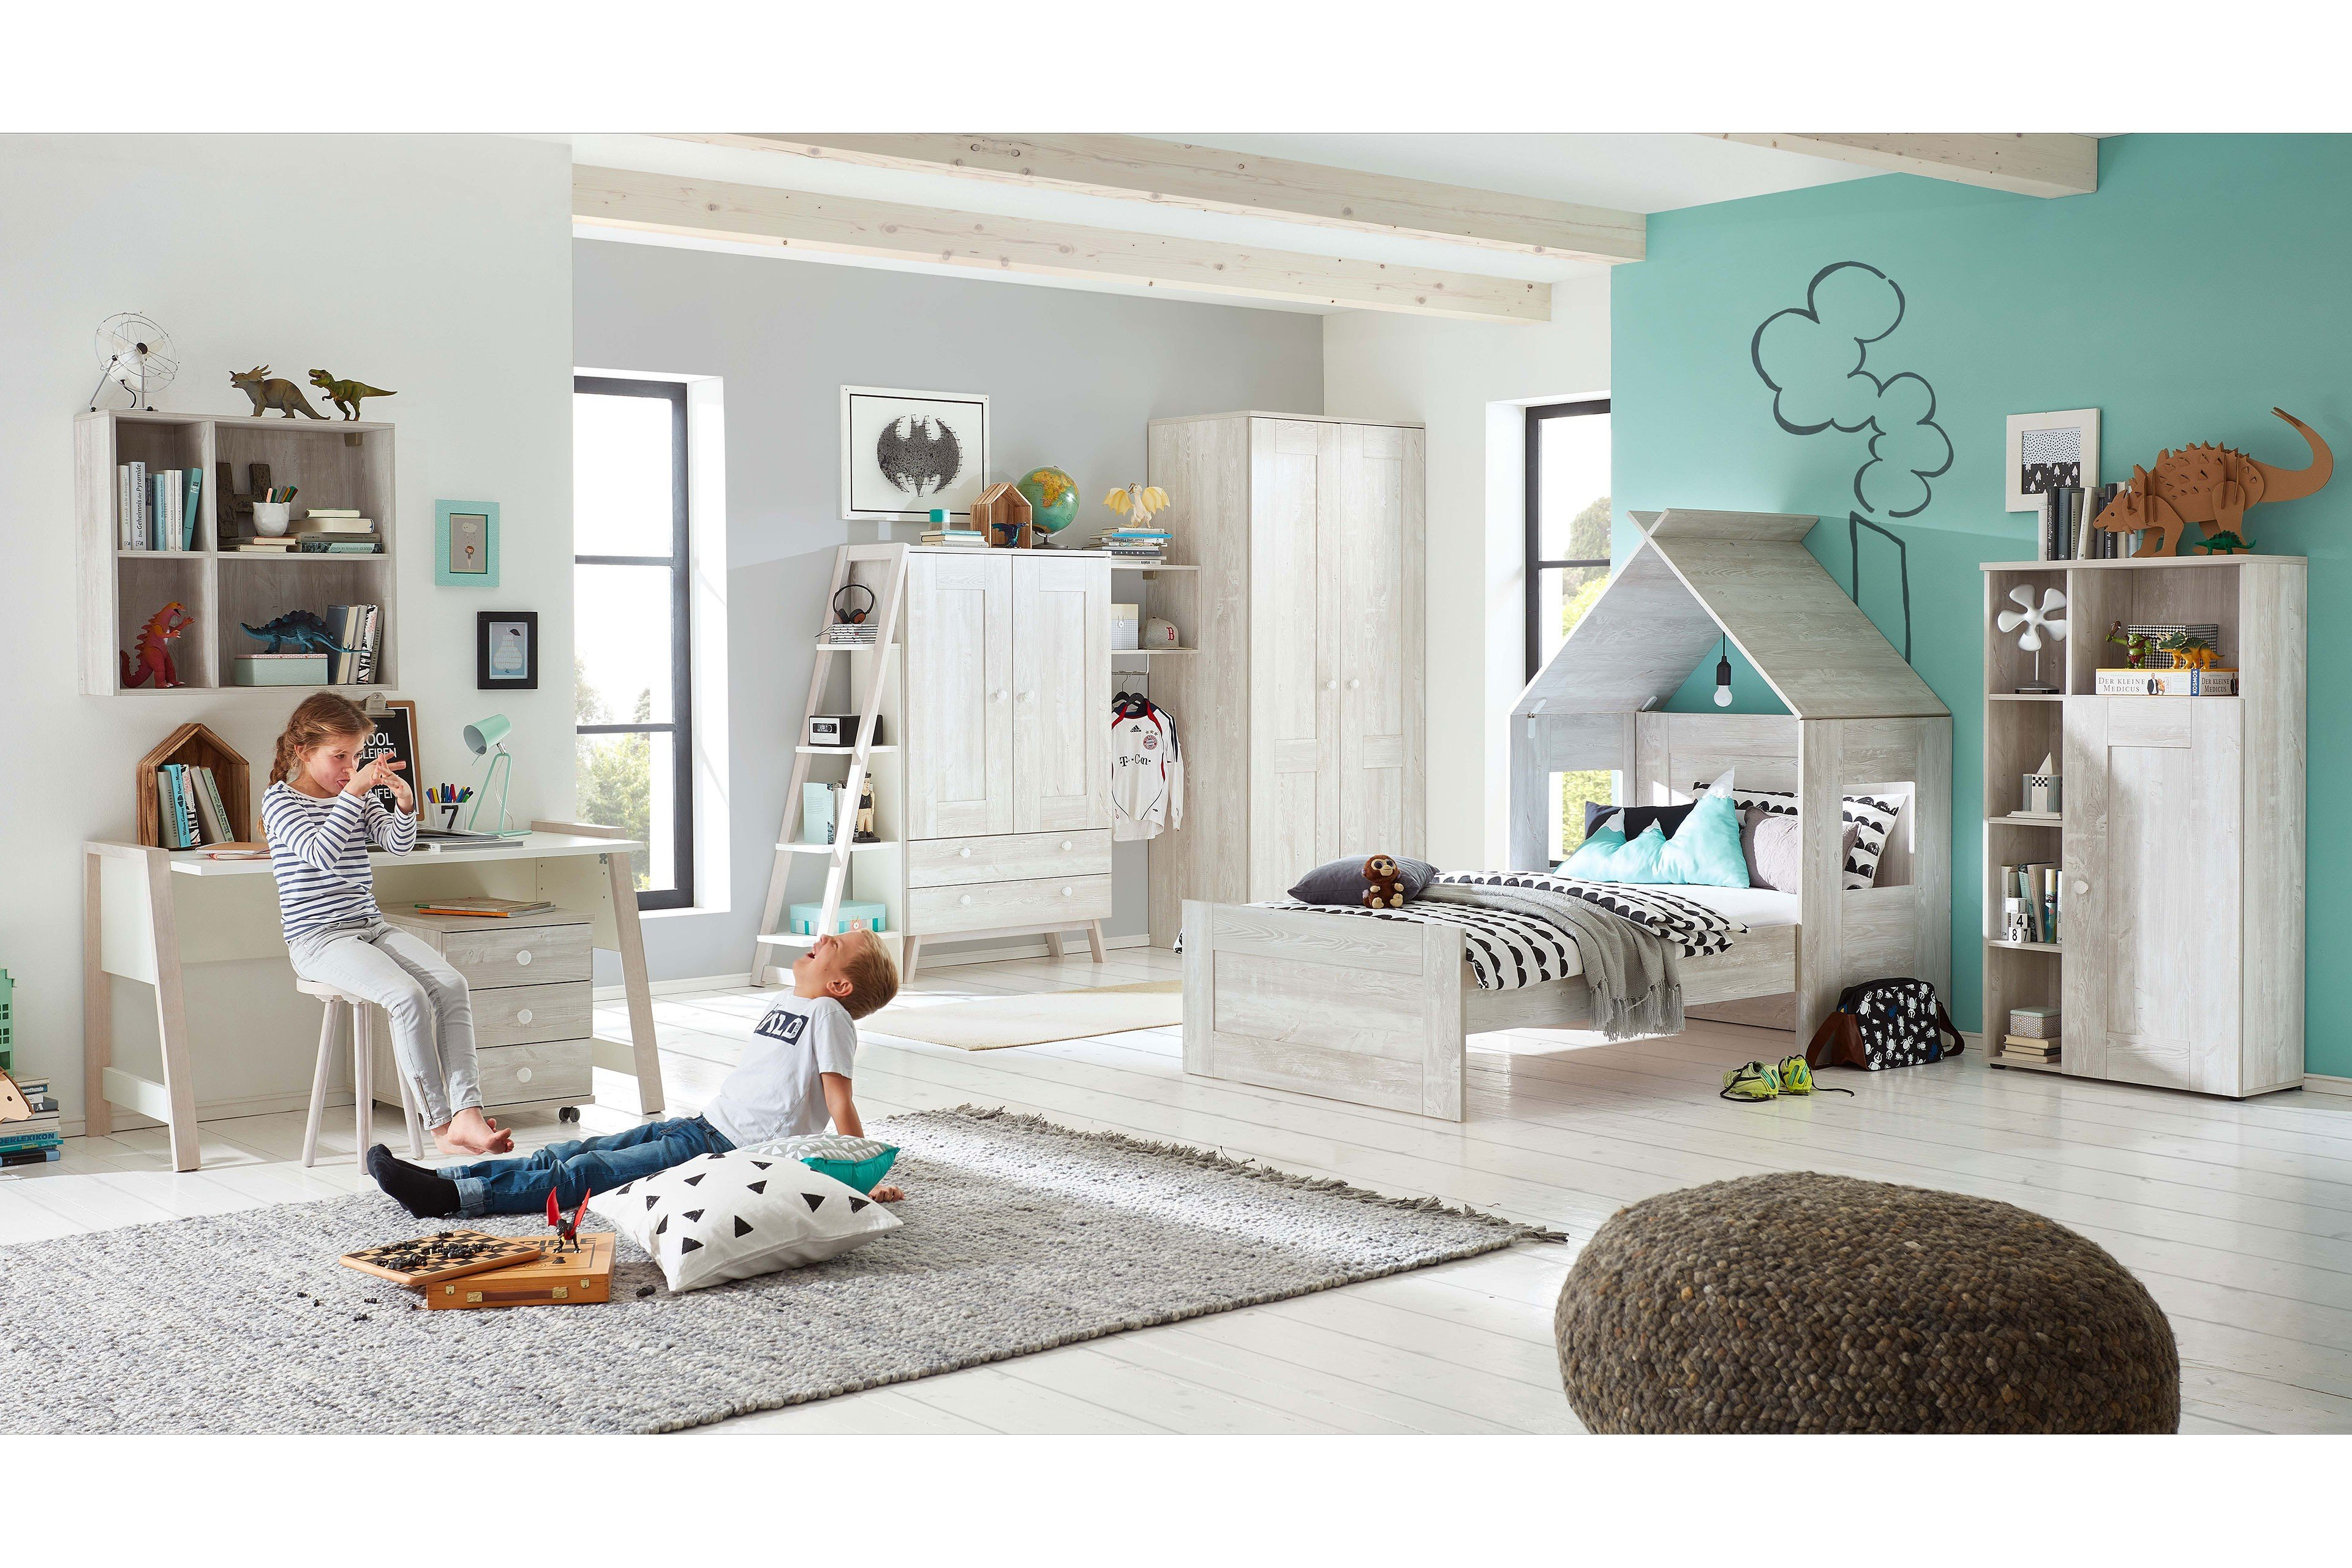 kinderzimmerm bel skandinavisch die beste idee idee f r. Black Bedroom Furniture Sets. Home Design Ideas